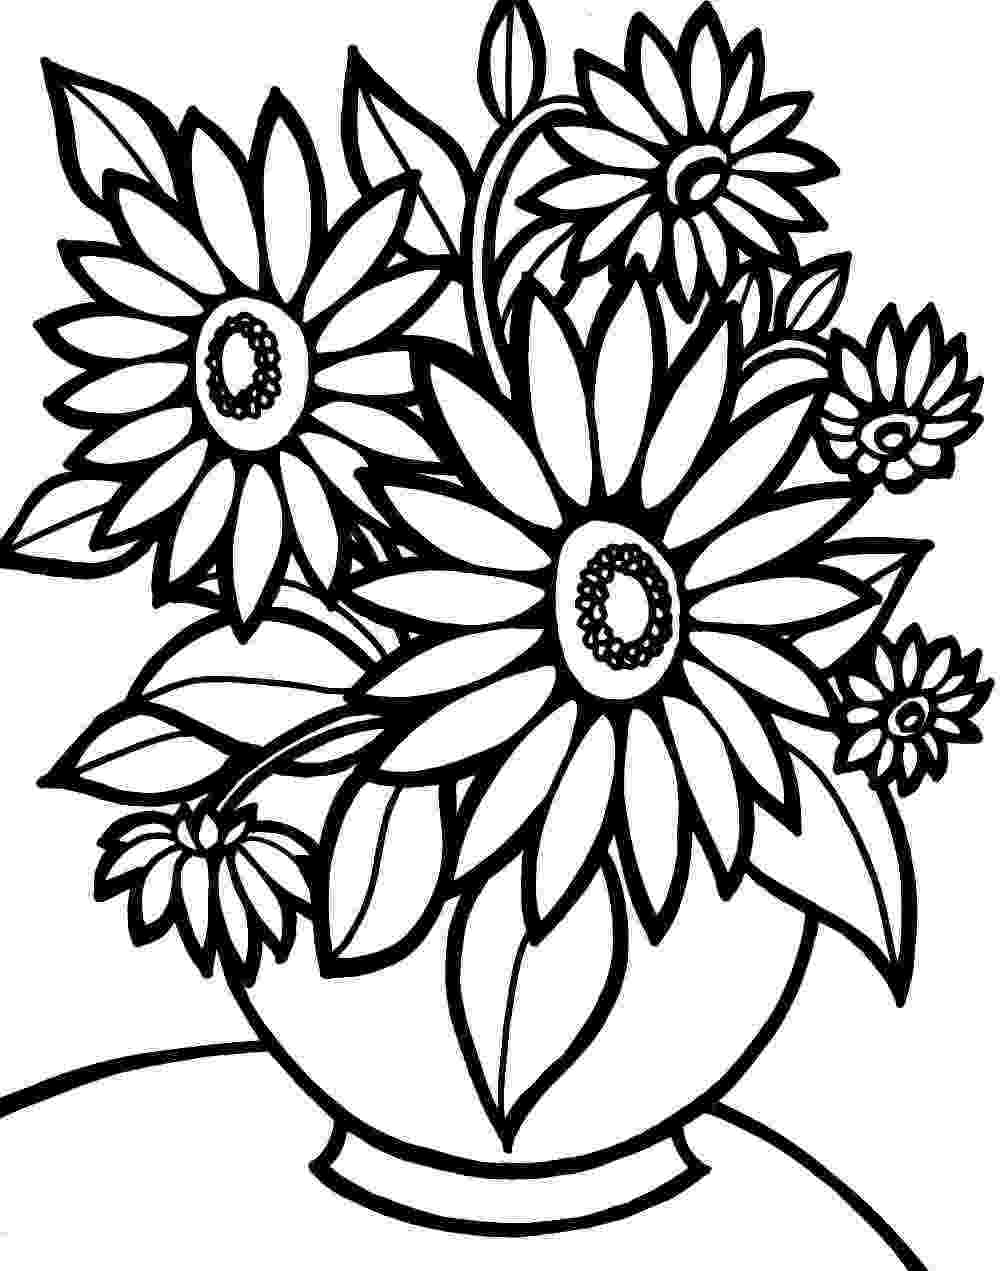 flowers coloring pages for kids free printable flower coloring pages for kids best for pages flowers kids coloring 1 1